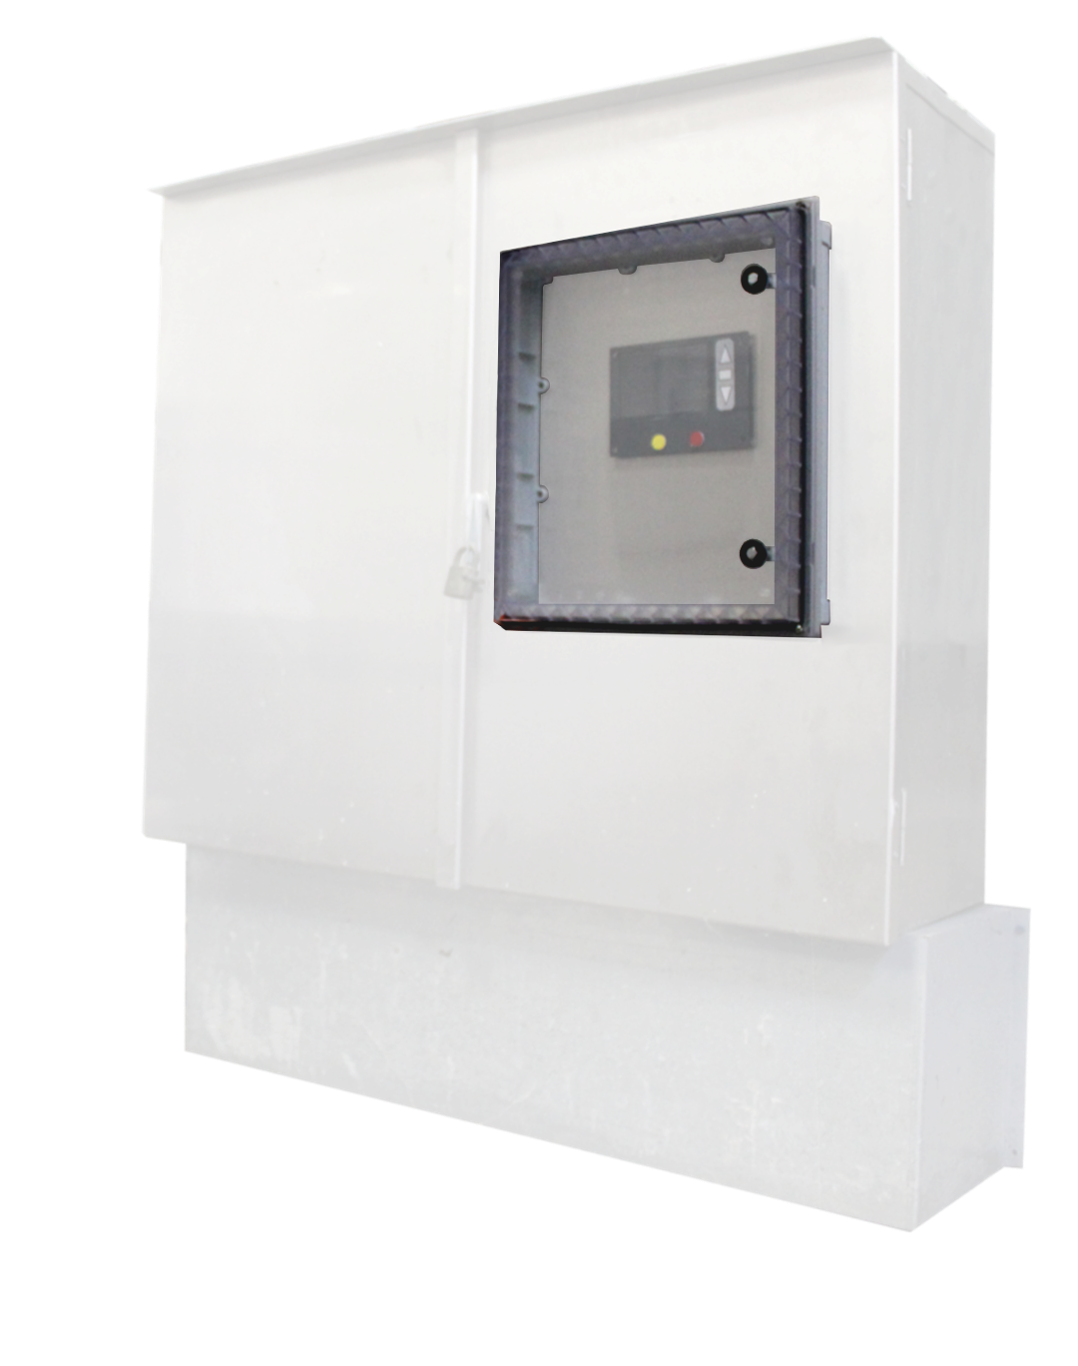 The UL listed IPW can be mounted over any underlying cabinet